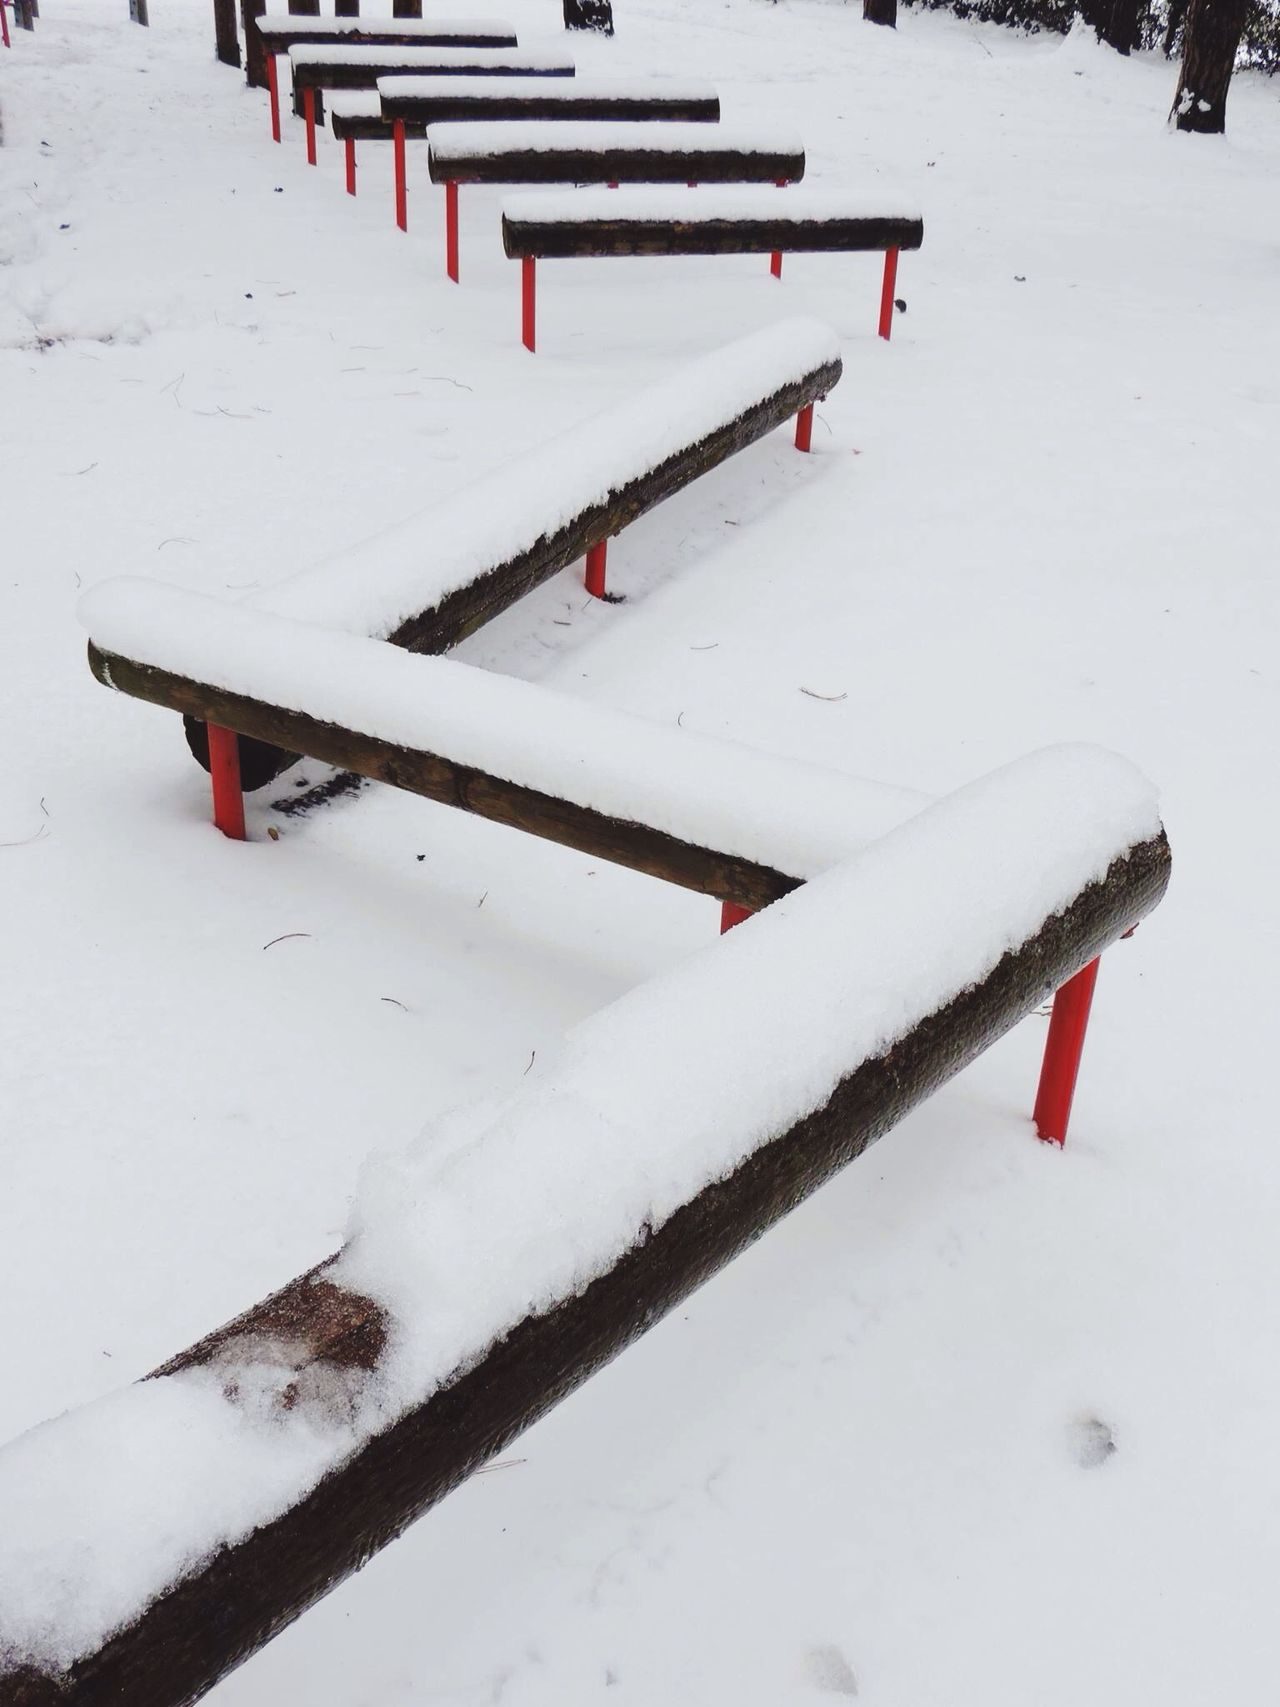 It's Cold Outside Showcase : January Pattern, Texture, Shape And Form Snow Views Sports Park Patterns Patterns Nature_collection Wooden Hurdles Sports Photography Another View Outdoor Gym Outdoor Photography